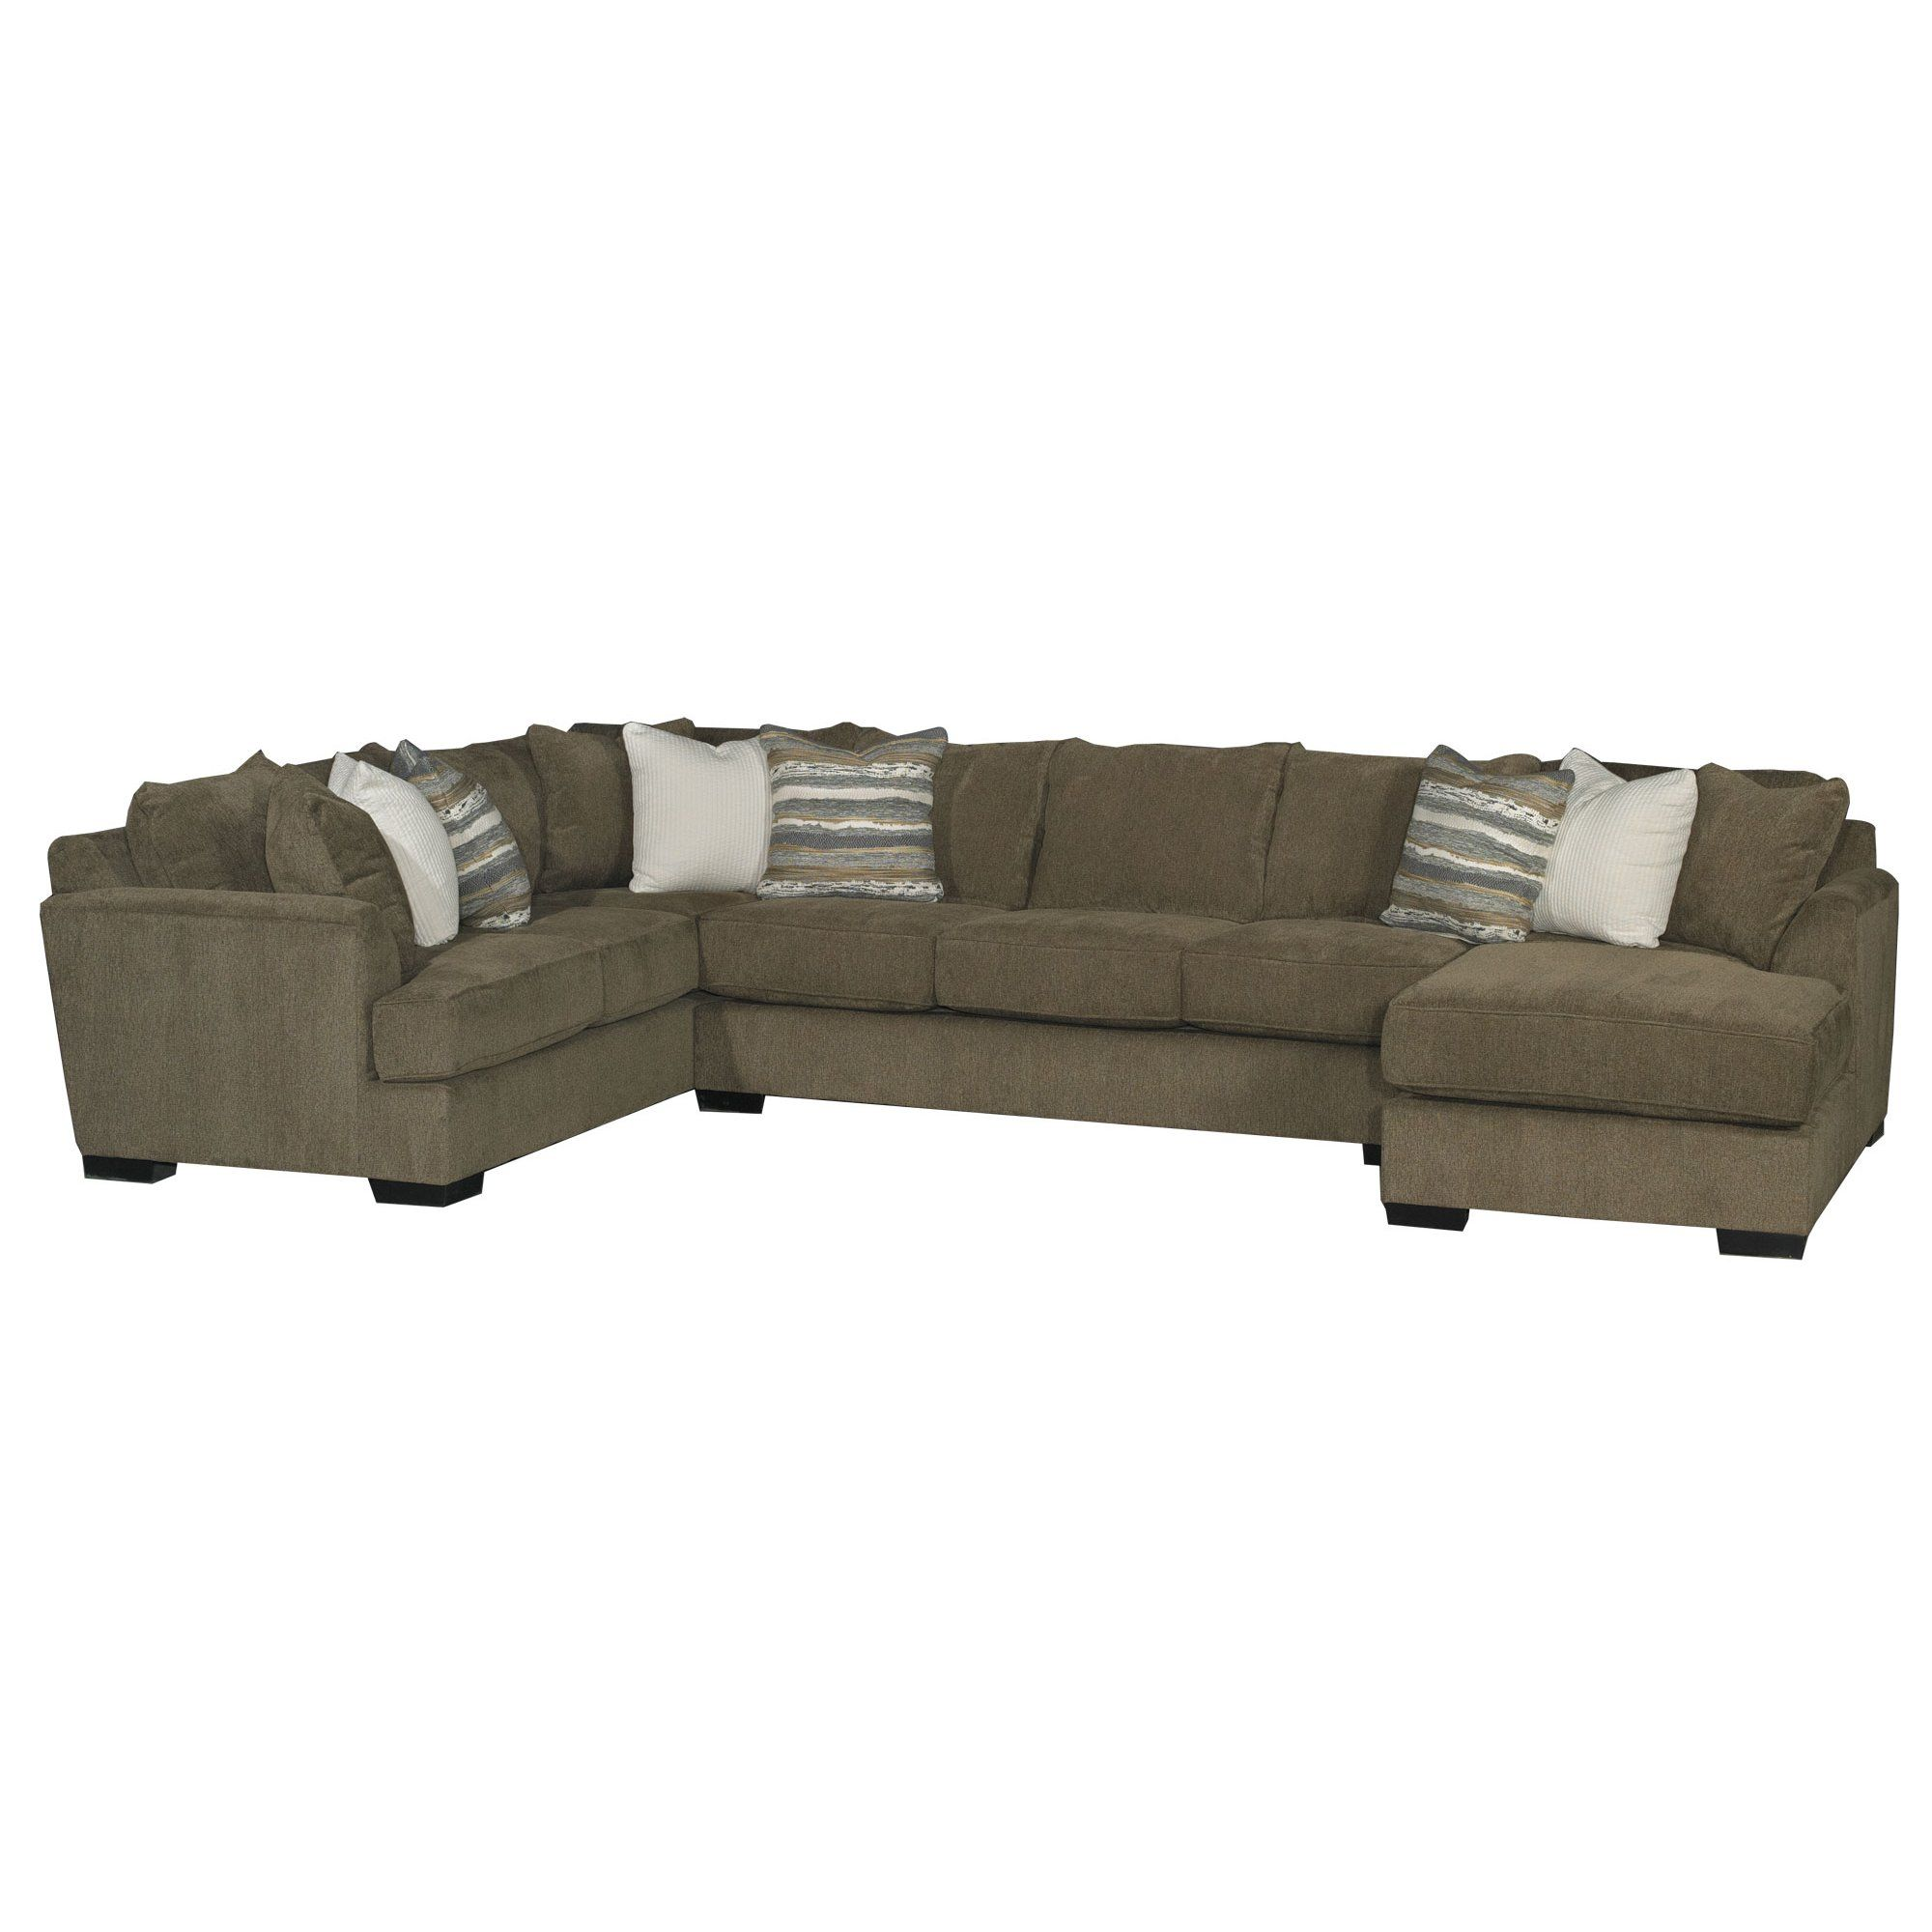 Chocolate Brown 3 Piece Sectional Sofa With Raf Chaise